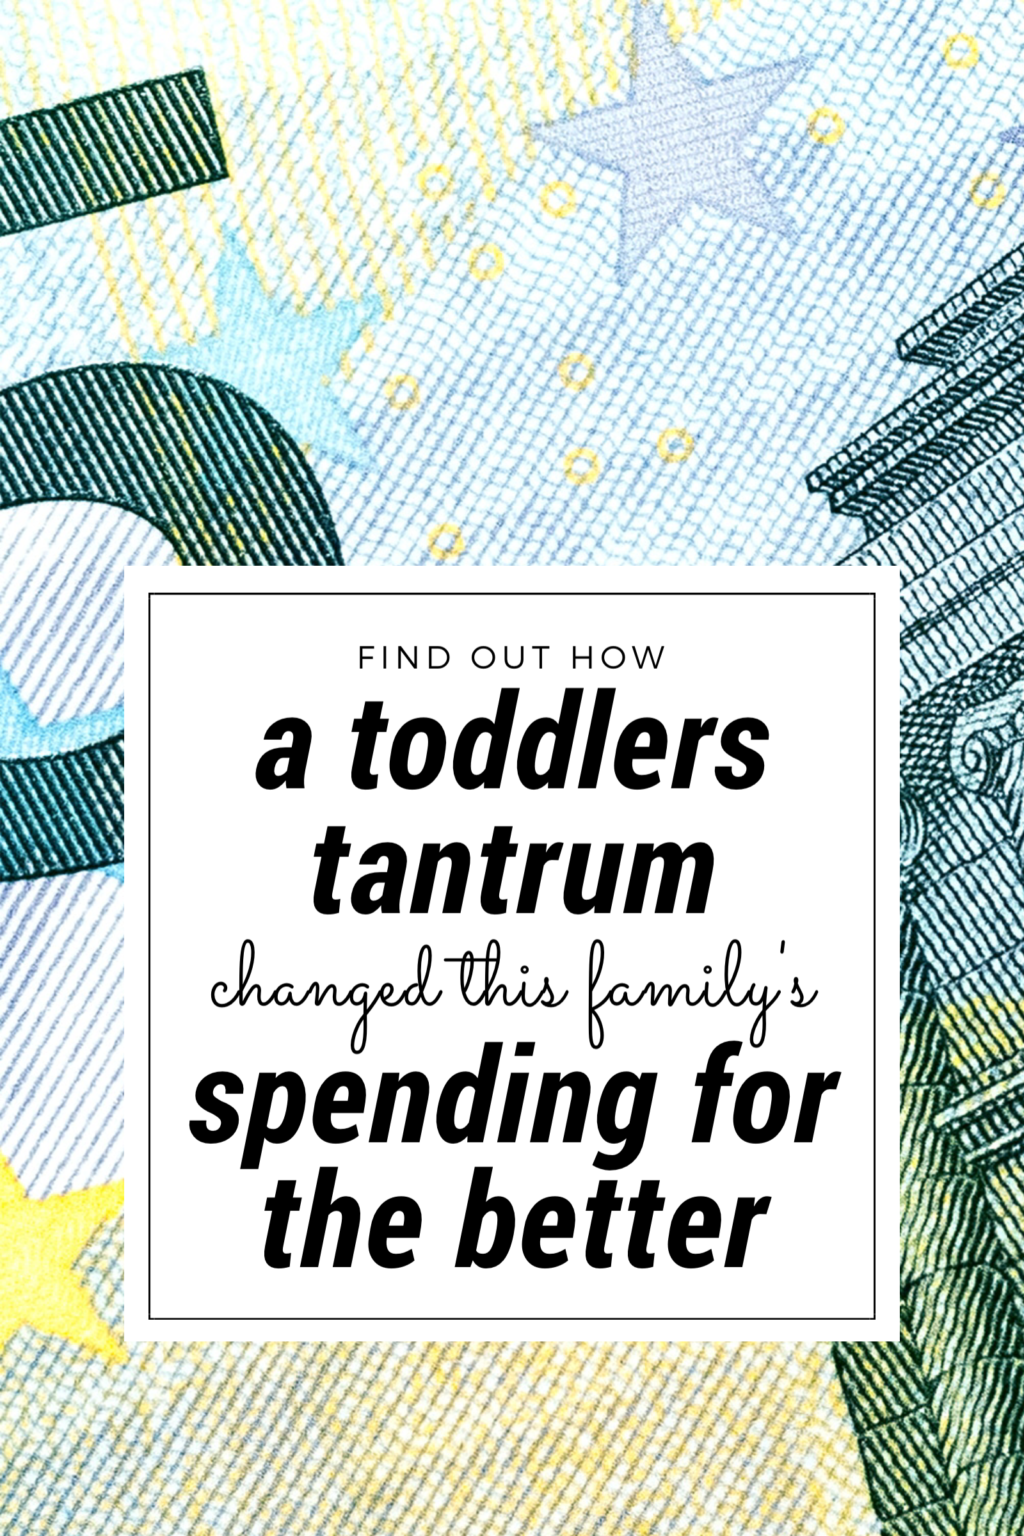 Find Out How A Toddlers Tantrum Changed This Family's Spending For The Better